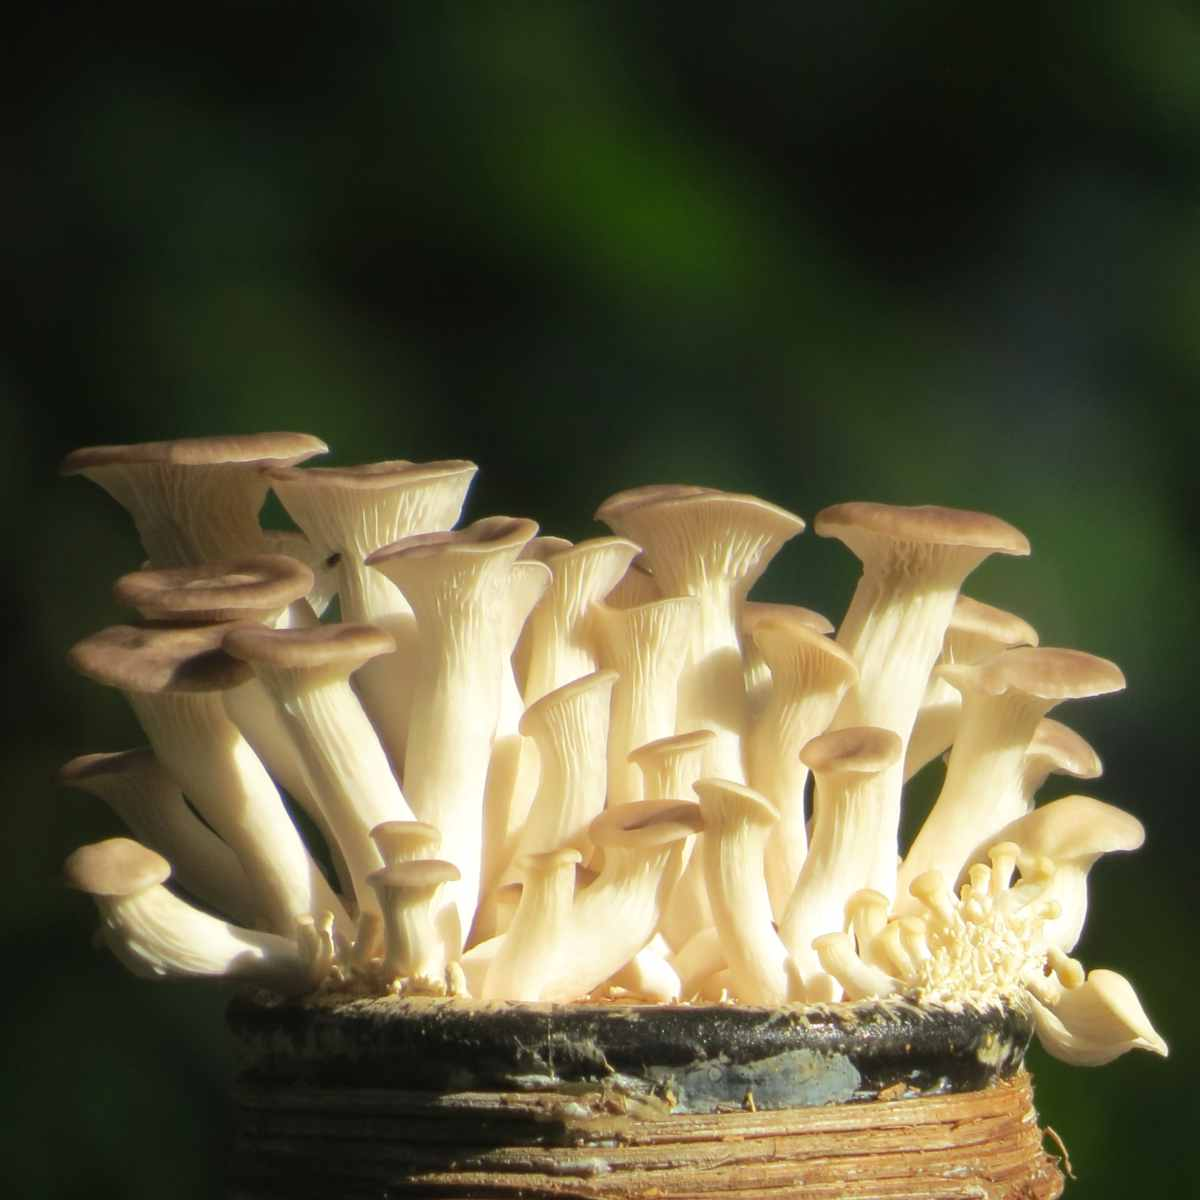 Oyster mushrooms growing.